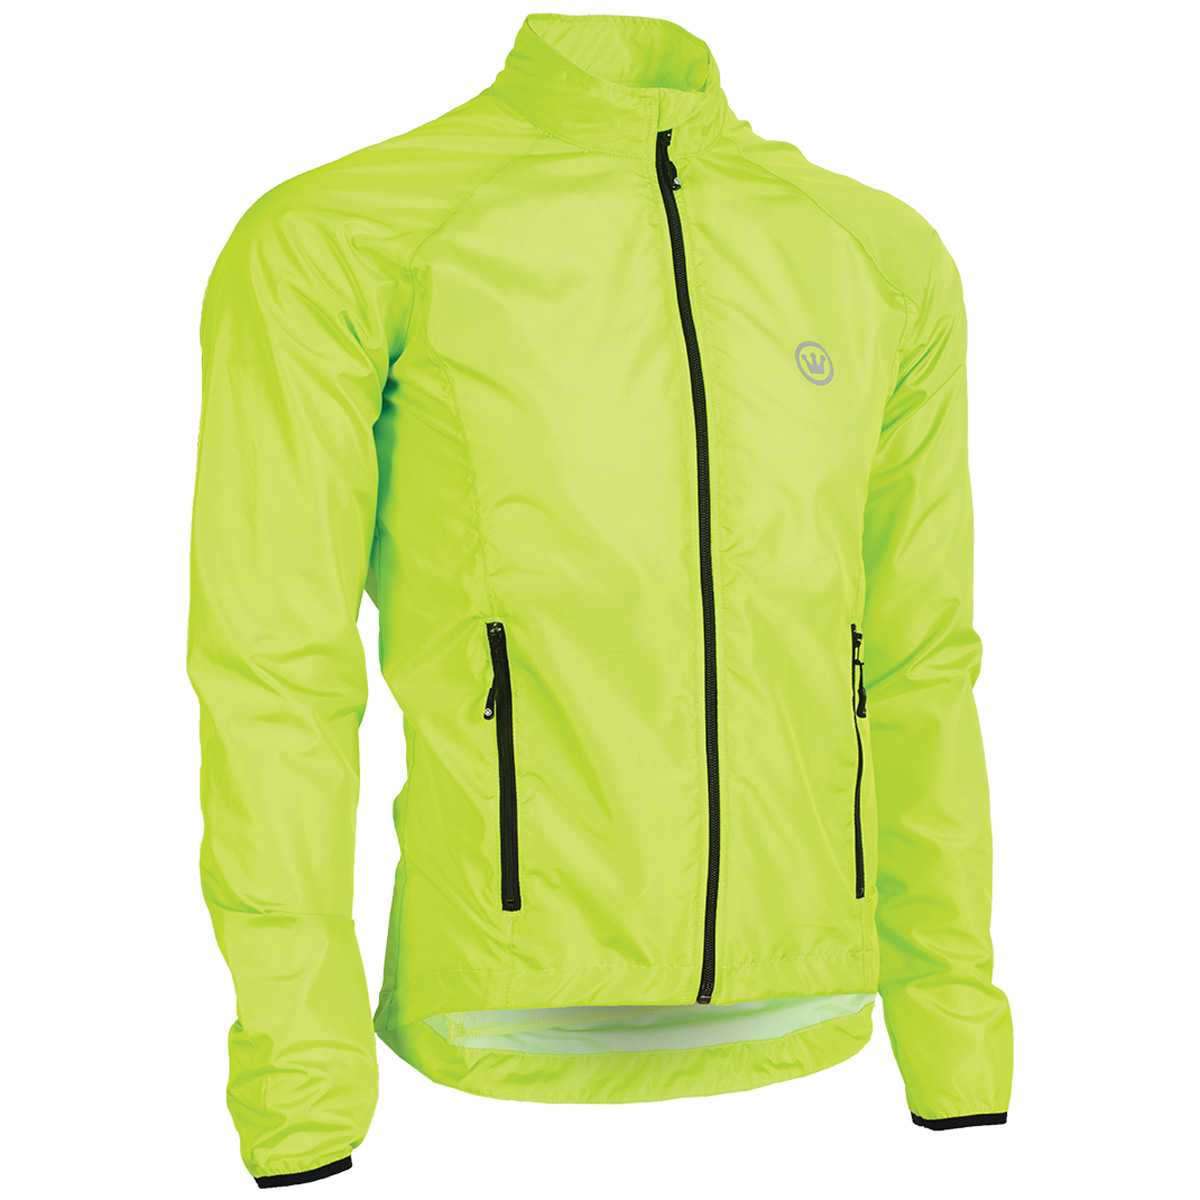 Canari Cyclewear 2016 17 Men's Coaster Shell Cycling Jacket 1703 by Canari Cyclewear